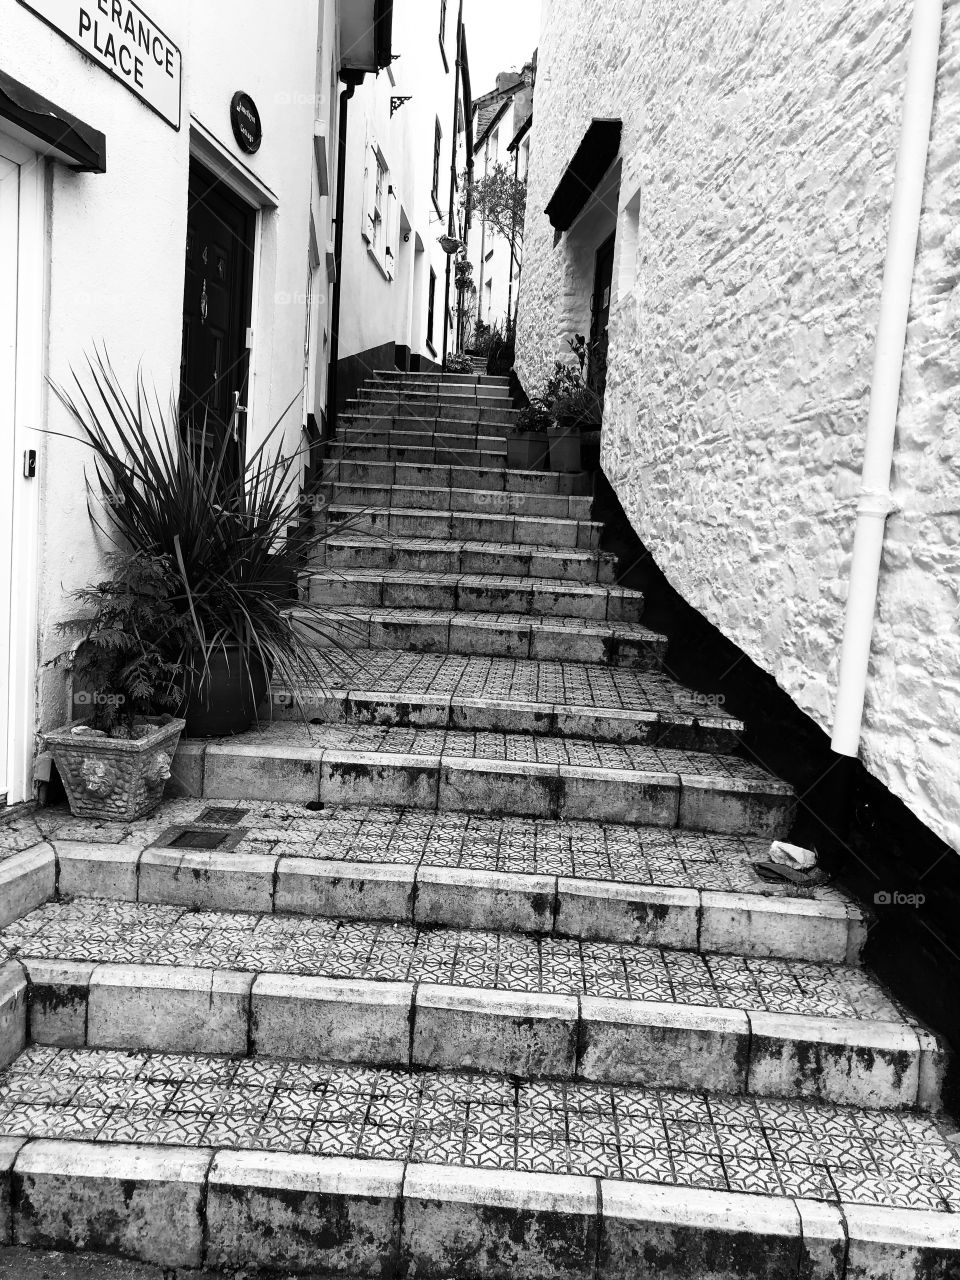 Perhaps these Brixham steps, rather steep and not for those without some vigor. Maybe they present a better spectacle in black and white, rather than colour.